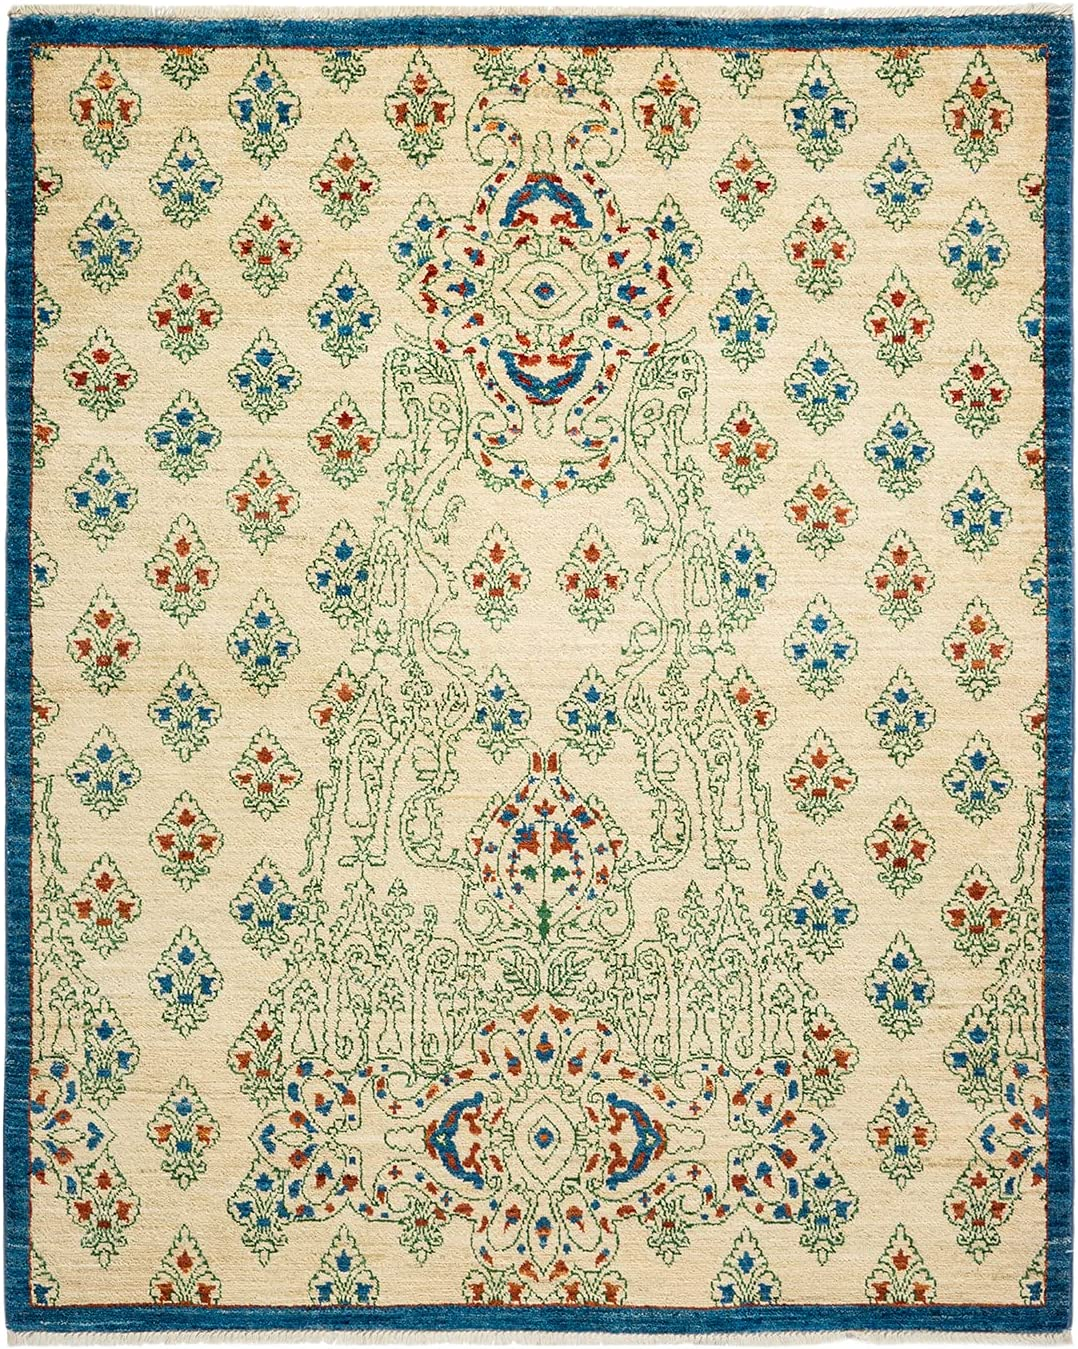 Solo Rugs Suzani Contemporary Knotted Sales of SALE items from new Soldering works Made One-of-a-Ki Hand